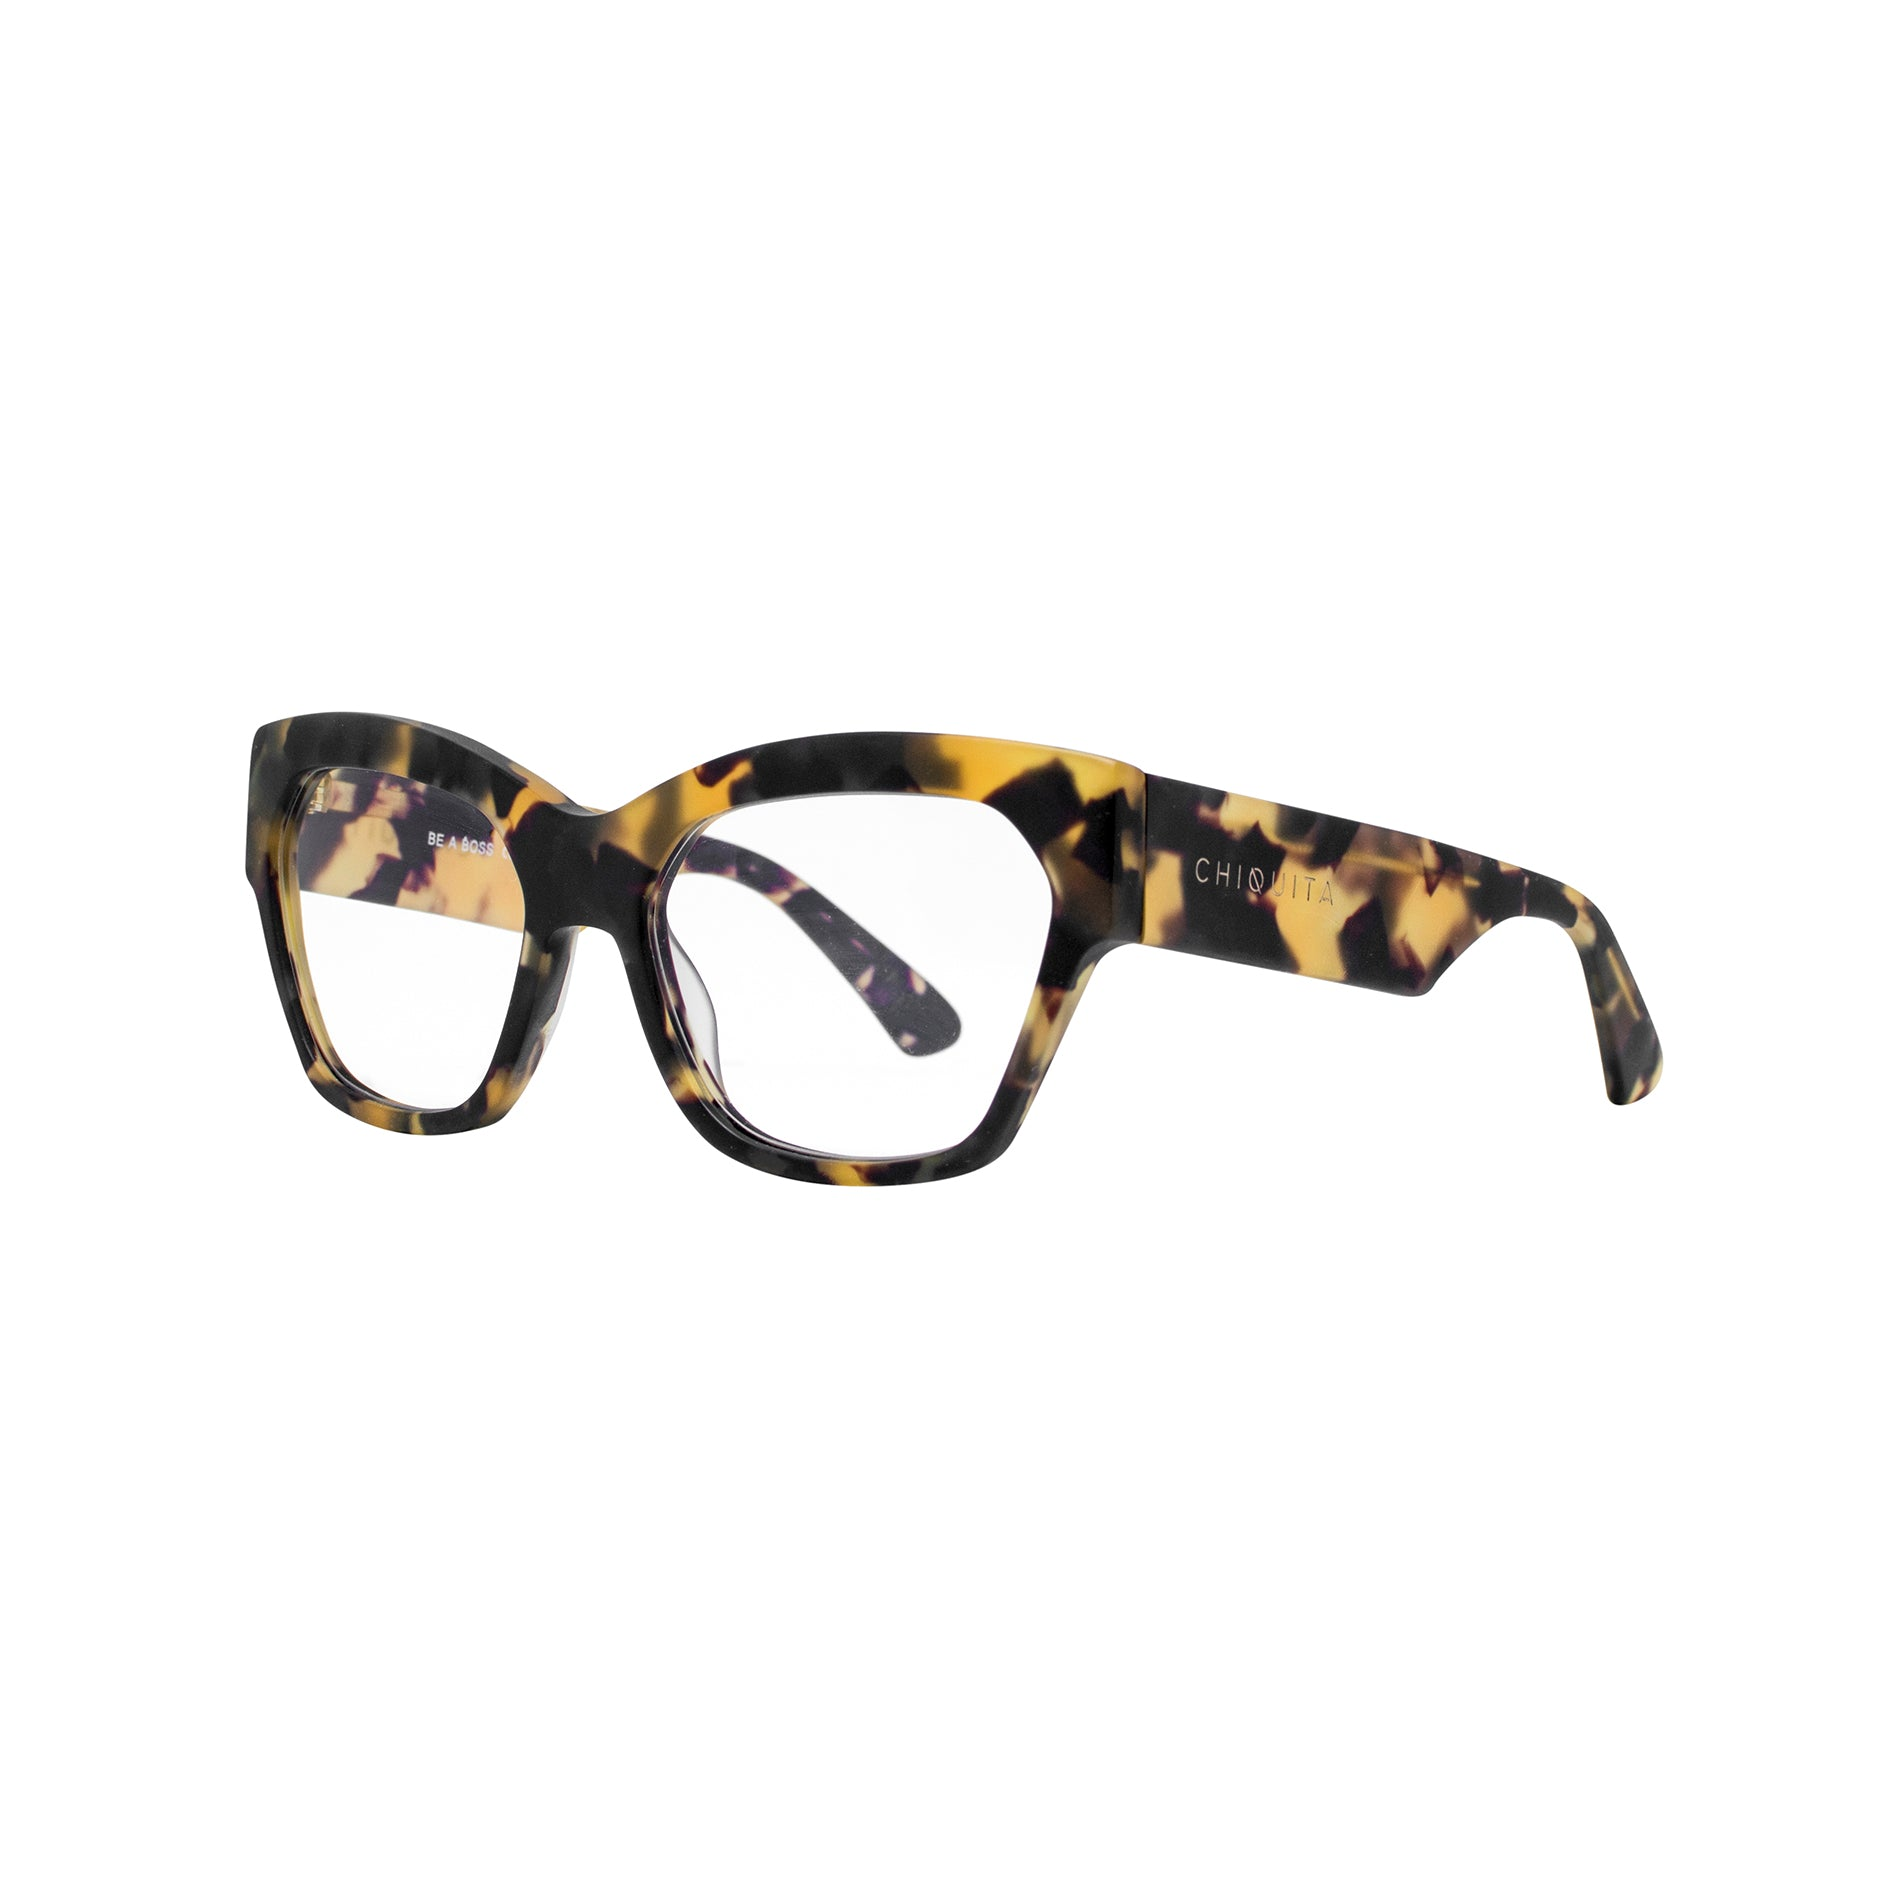 The BOSS Tortoiseshell - Blue Light Eyewear by Chiquita